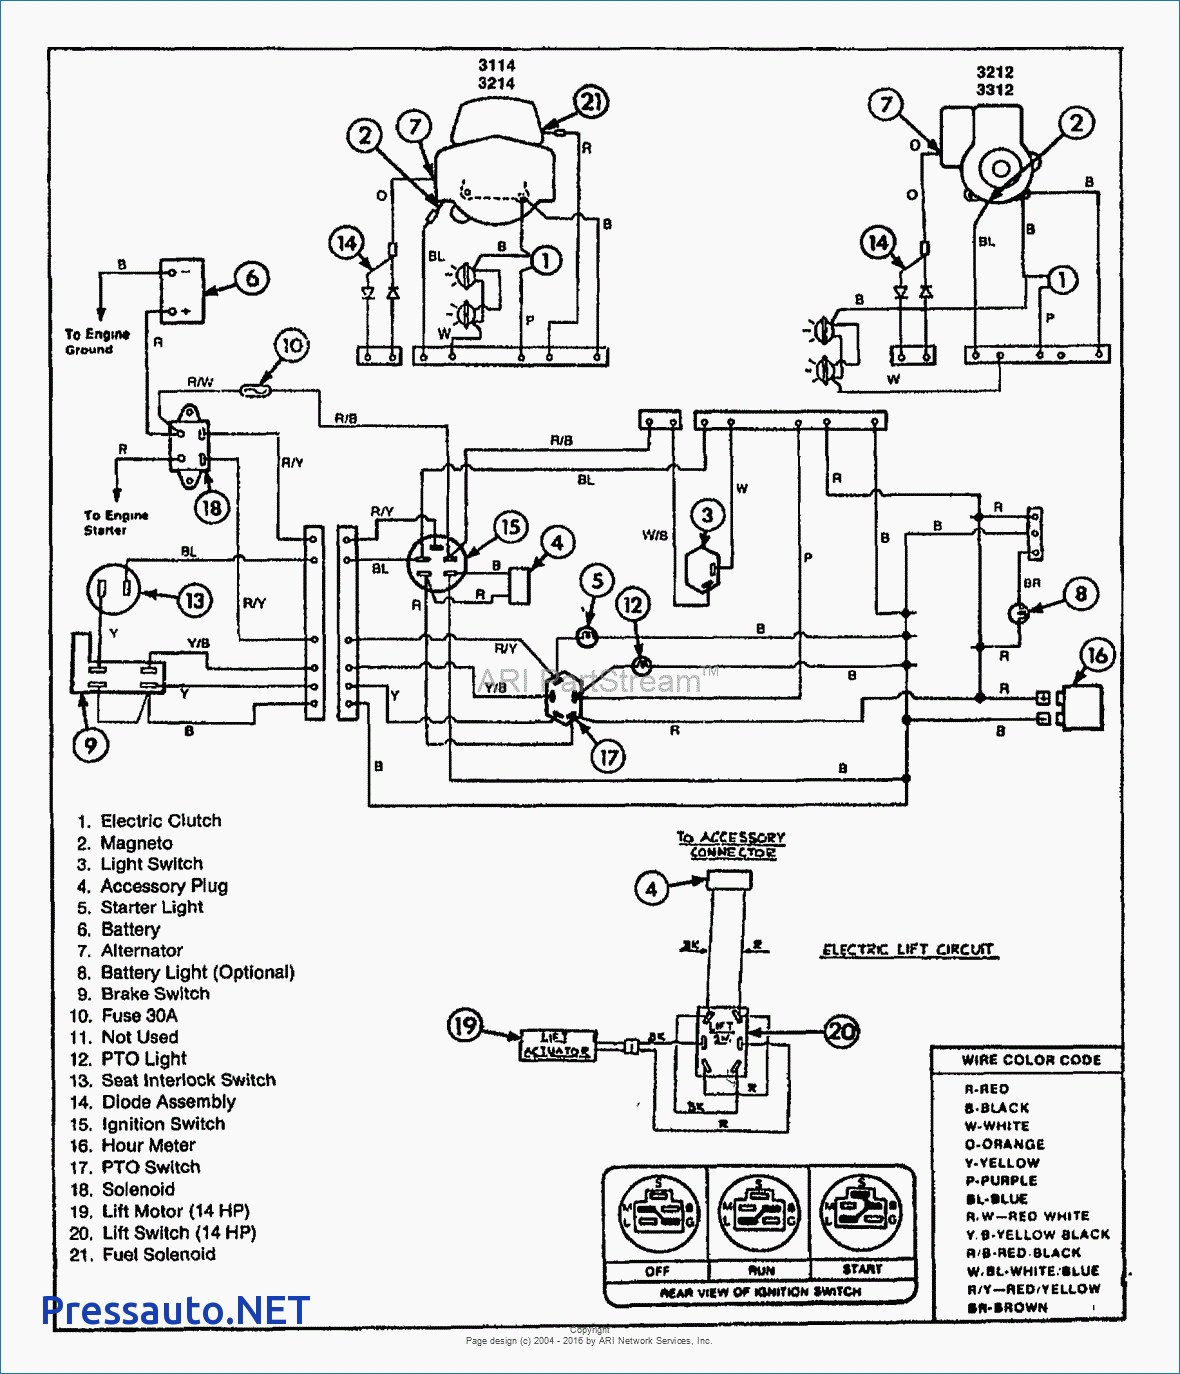 6 pole ignition switch wiring diagram [ 1180 x 1374 Pixel ]